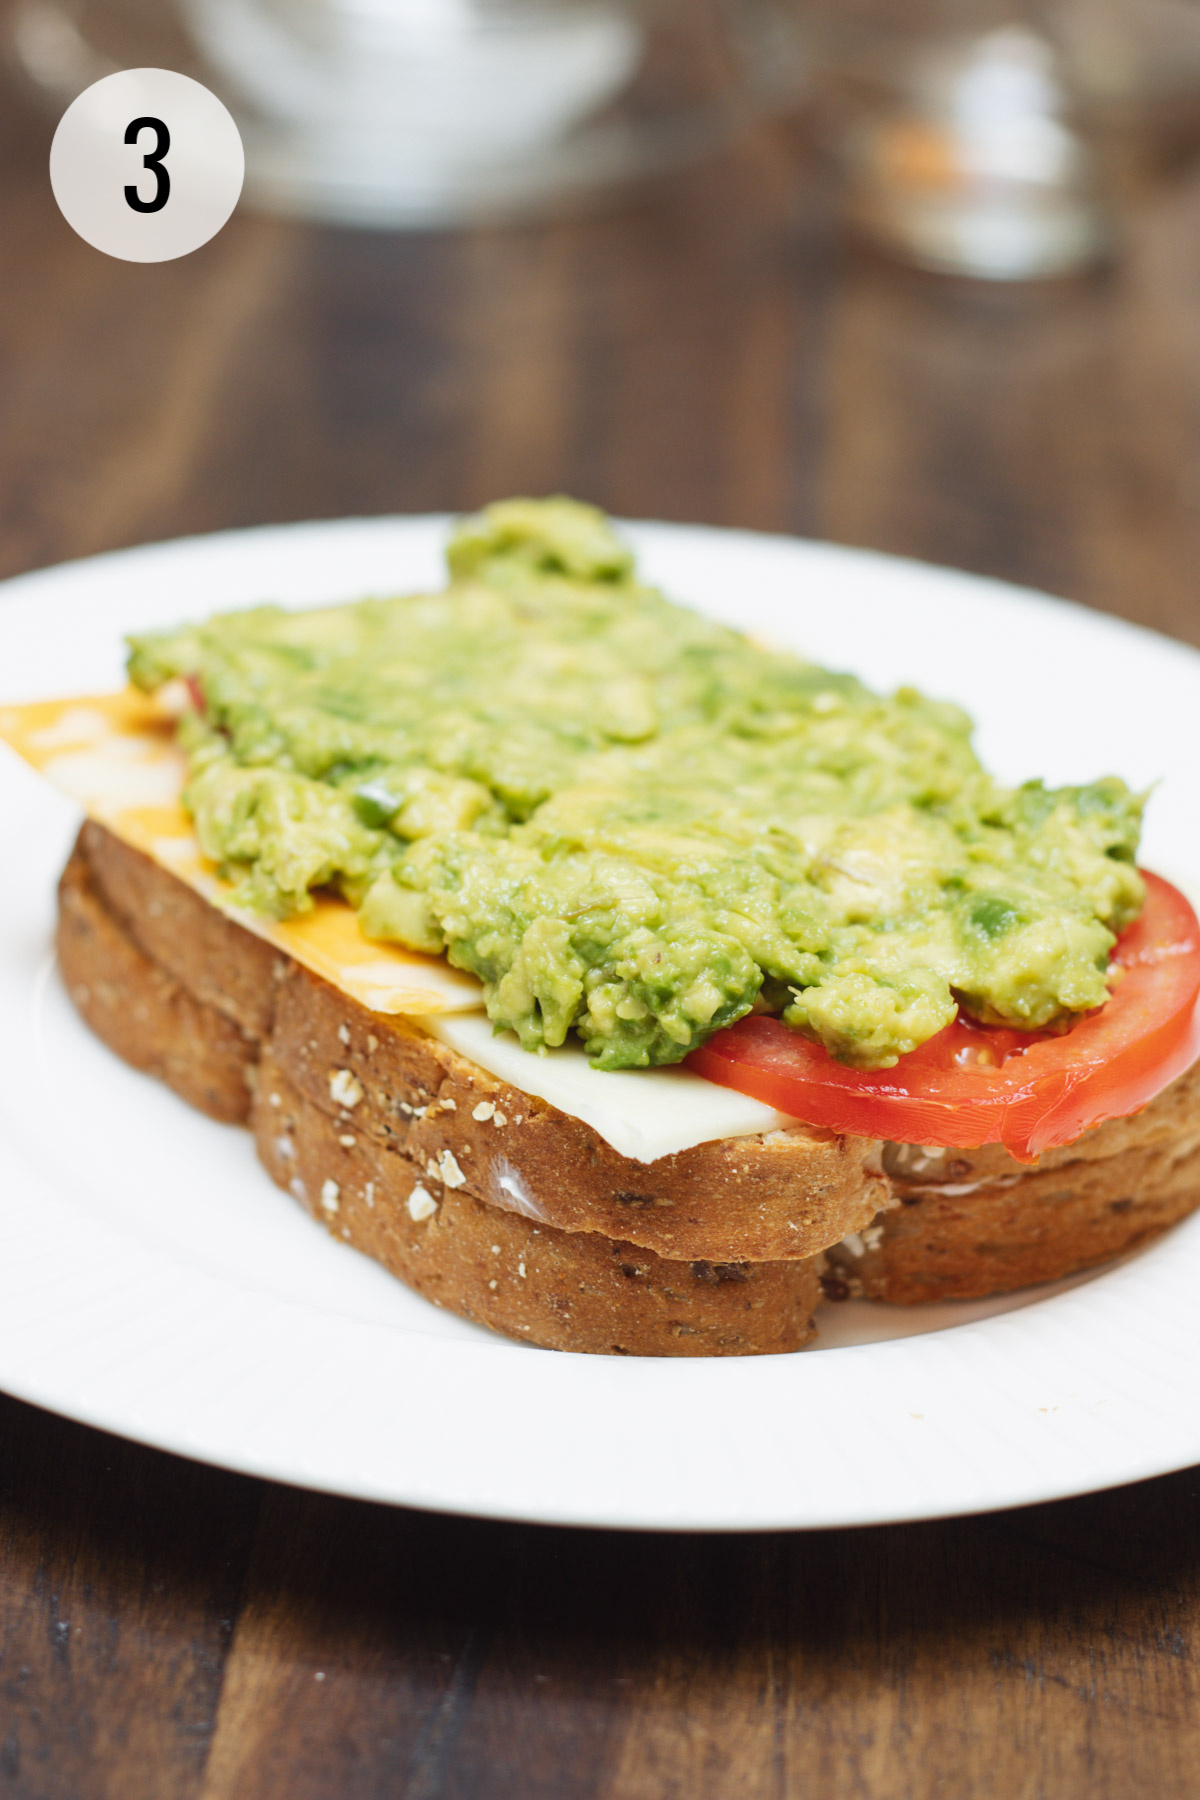 Two slices of bread topped with cheese, tomato and smashed avocado placed on a white plate.